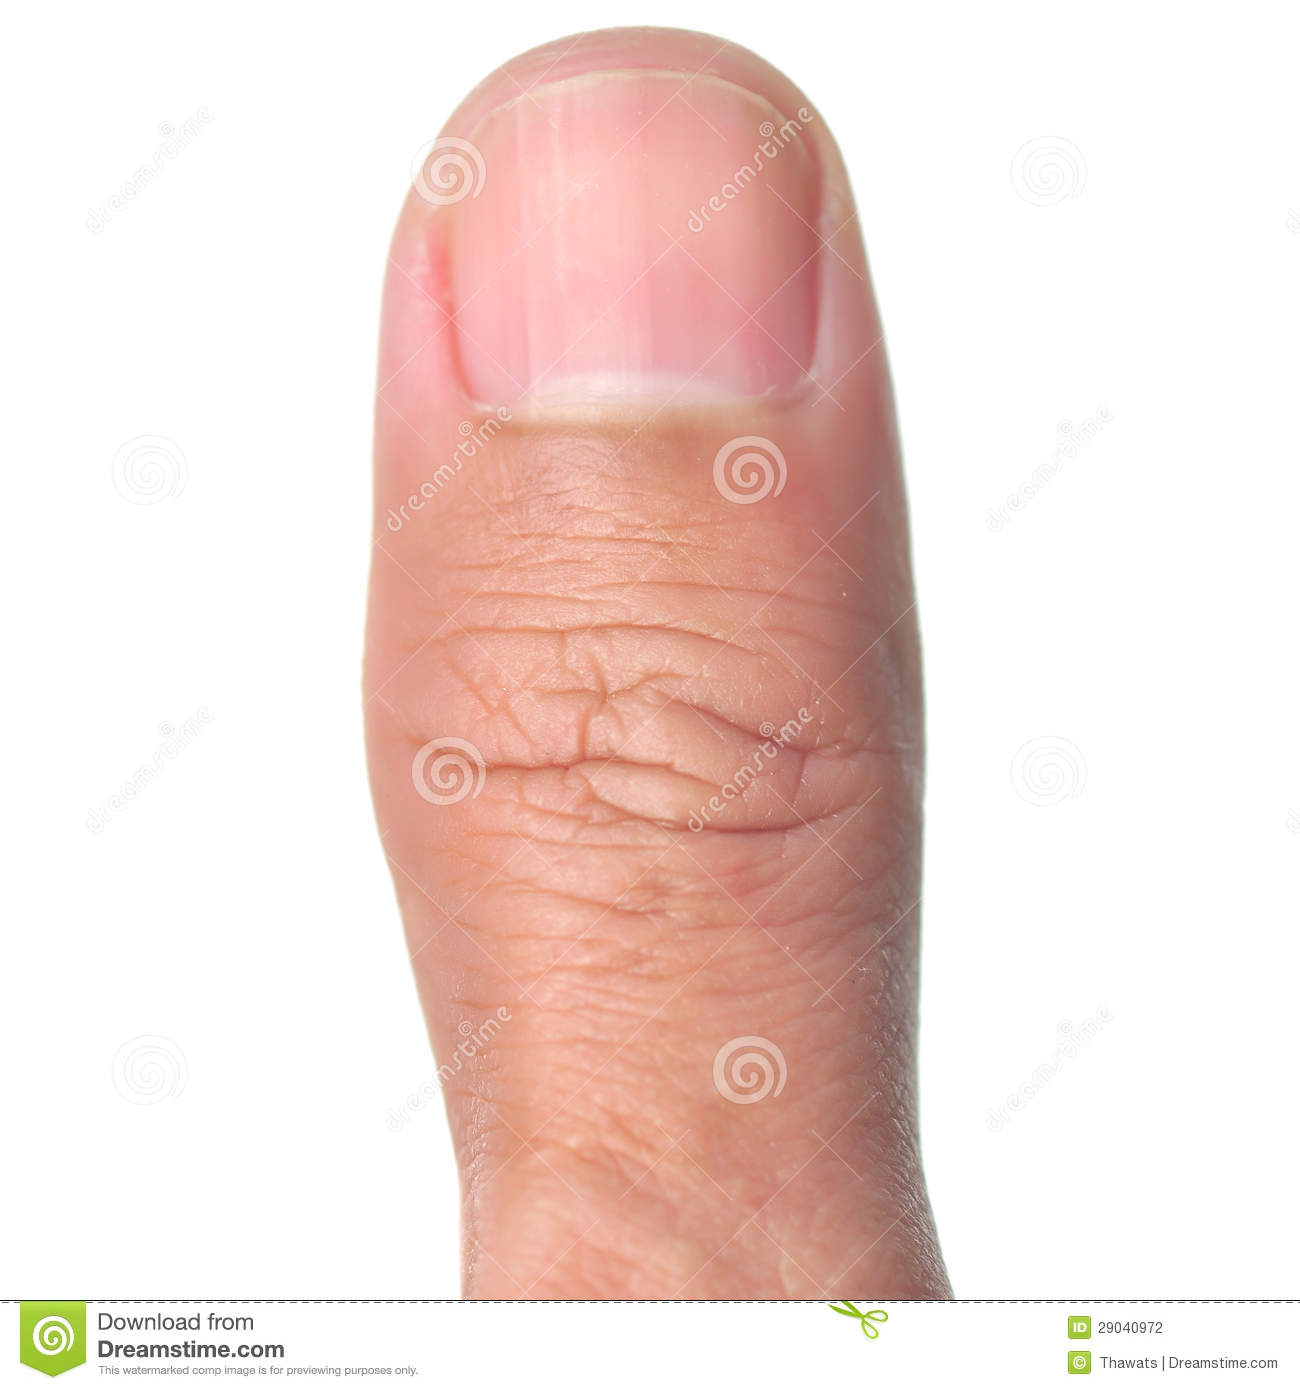 Thumb finger stock photo. Image of anatomy, image, curves - 29040972